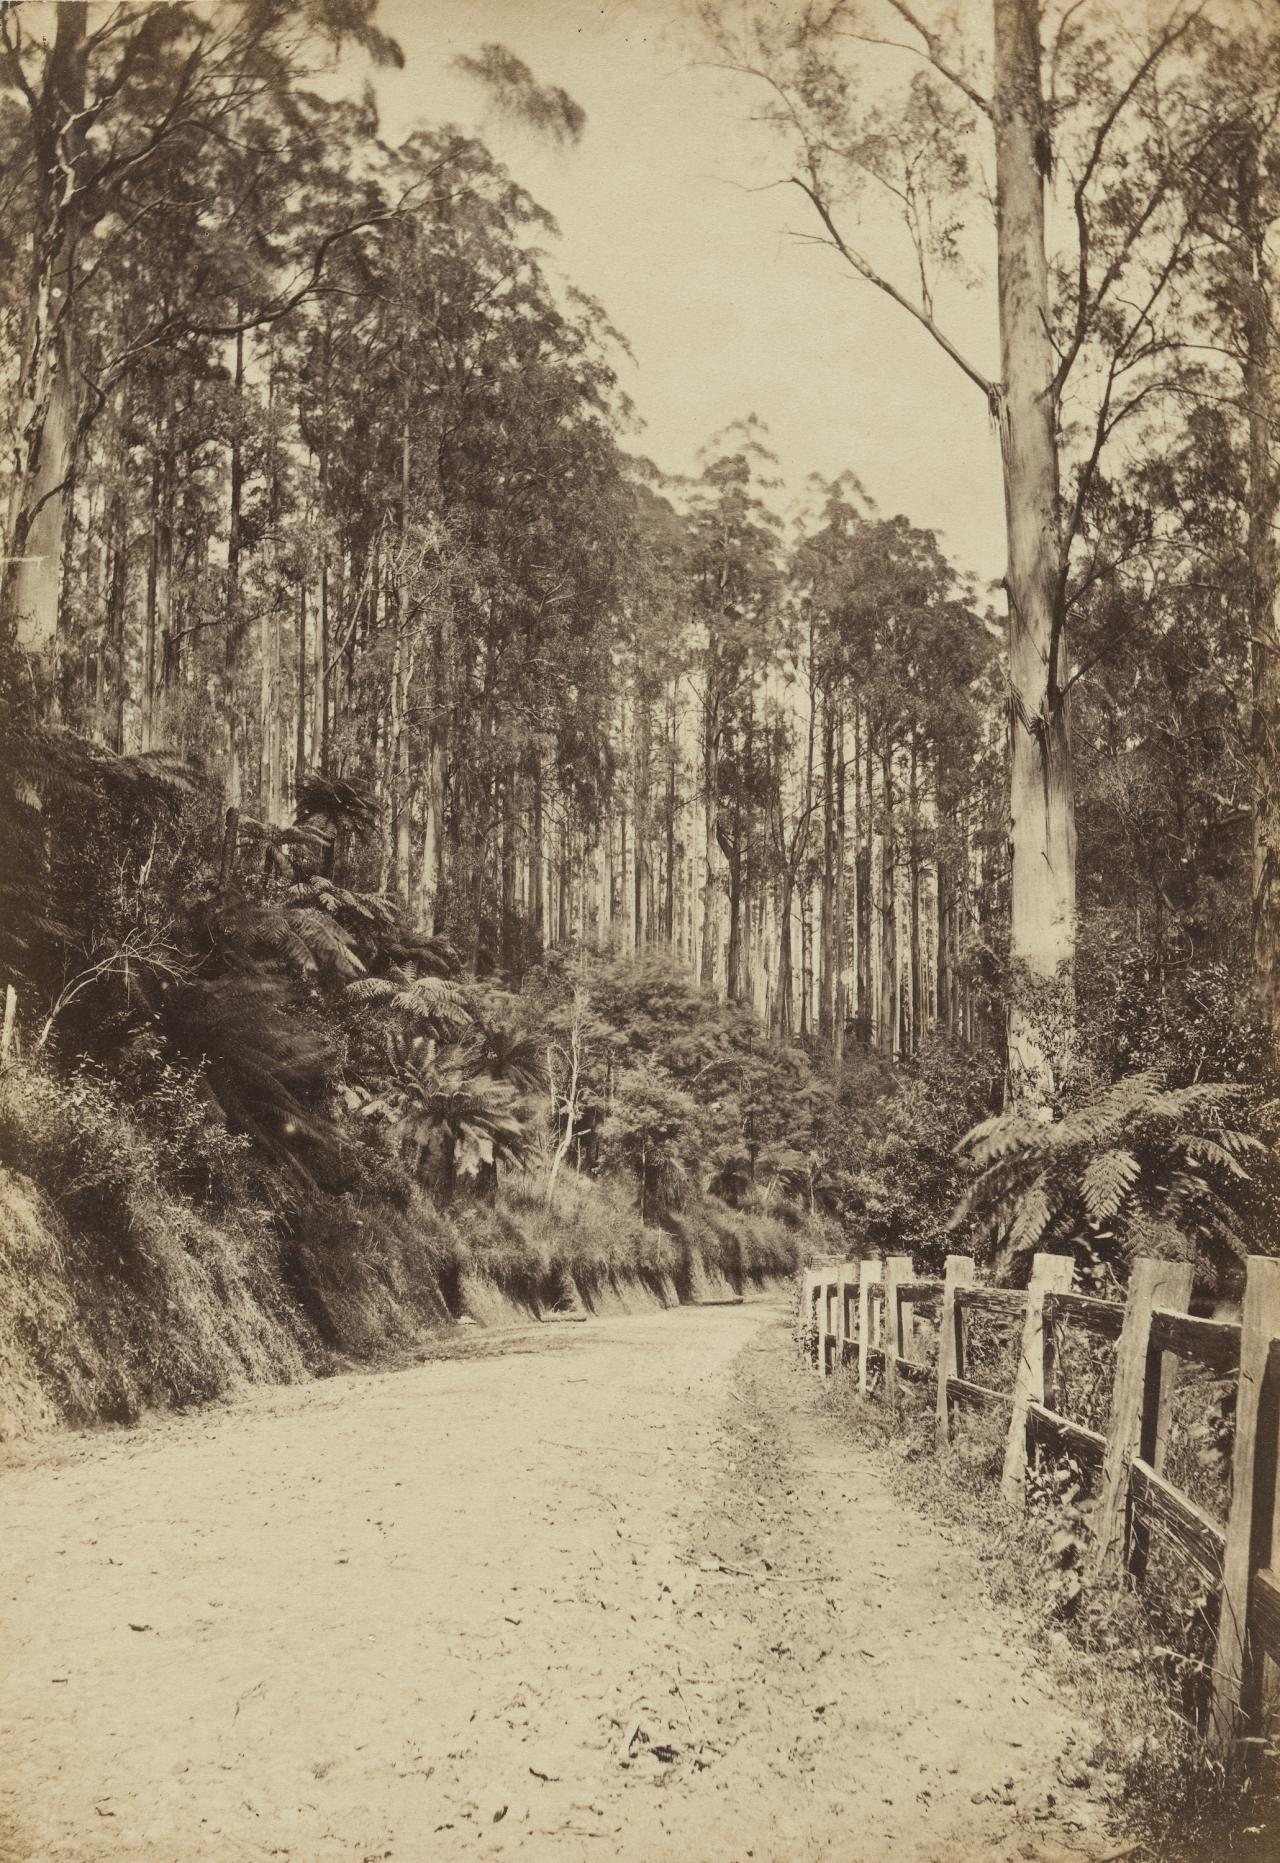 Roadway scene on the Black Spur